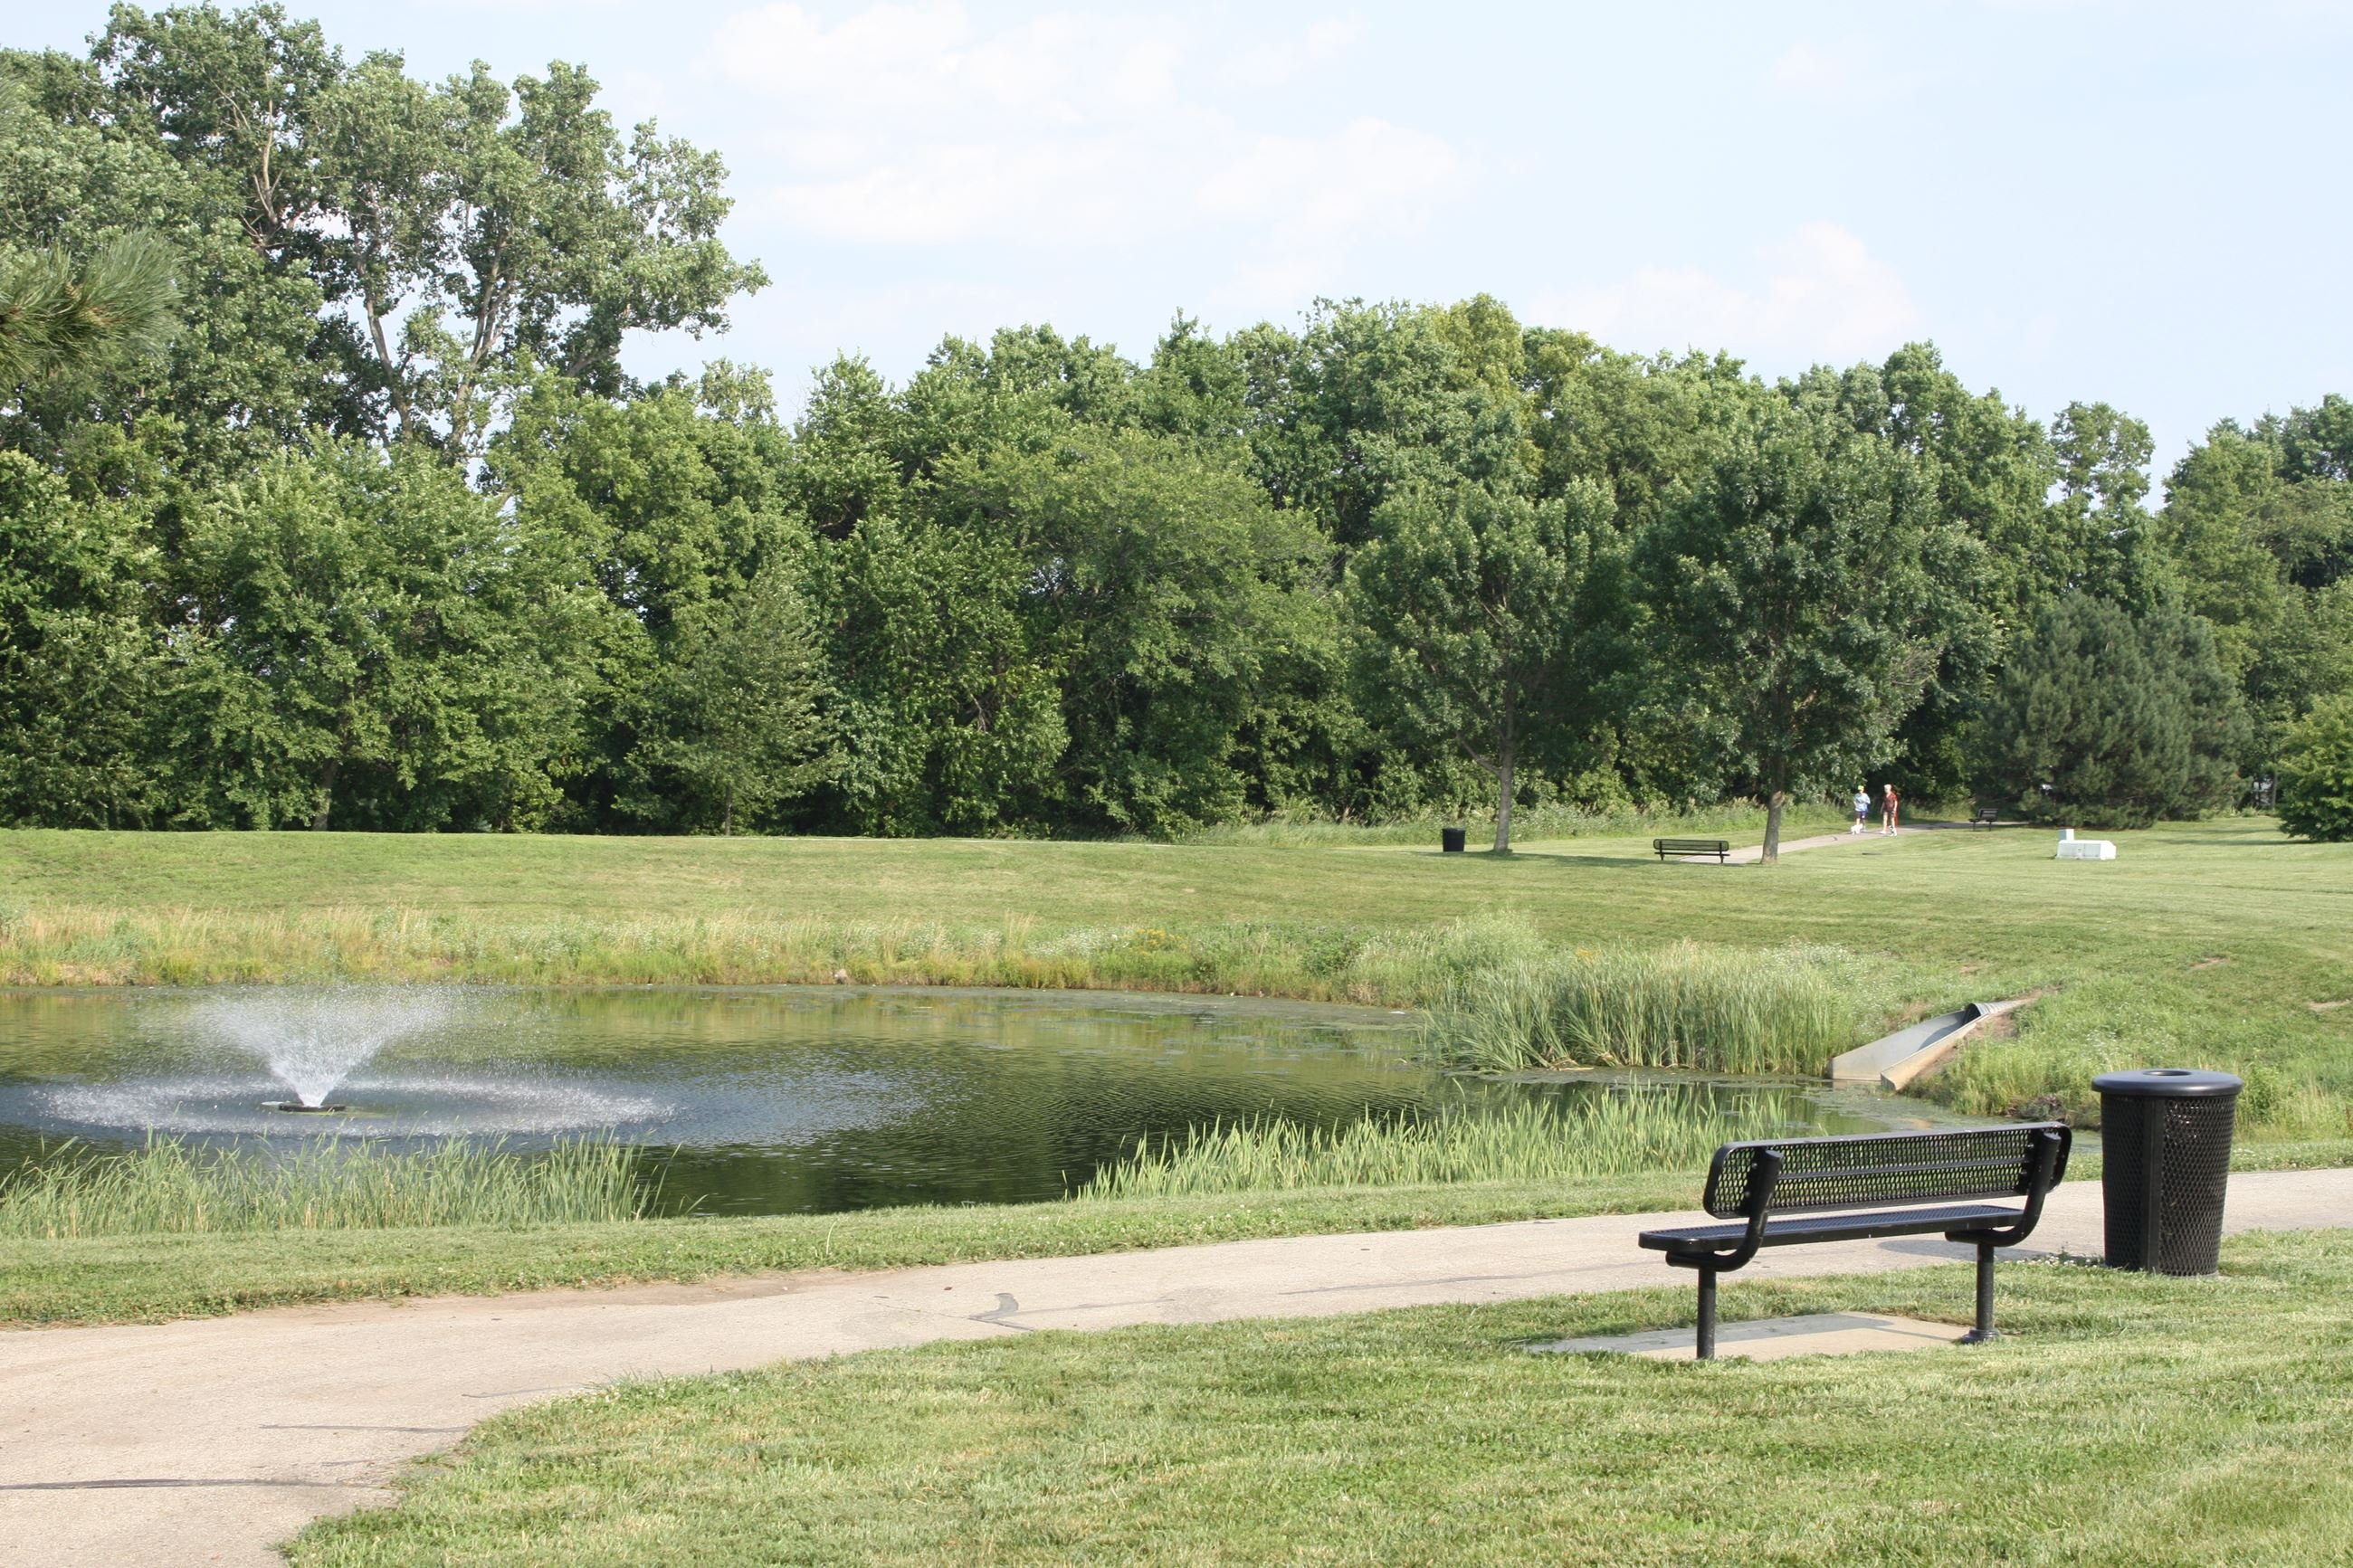 An outdoor image showing a pond and fountain at Blackhawk Park with trees lining the background.